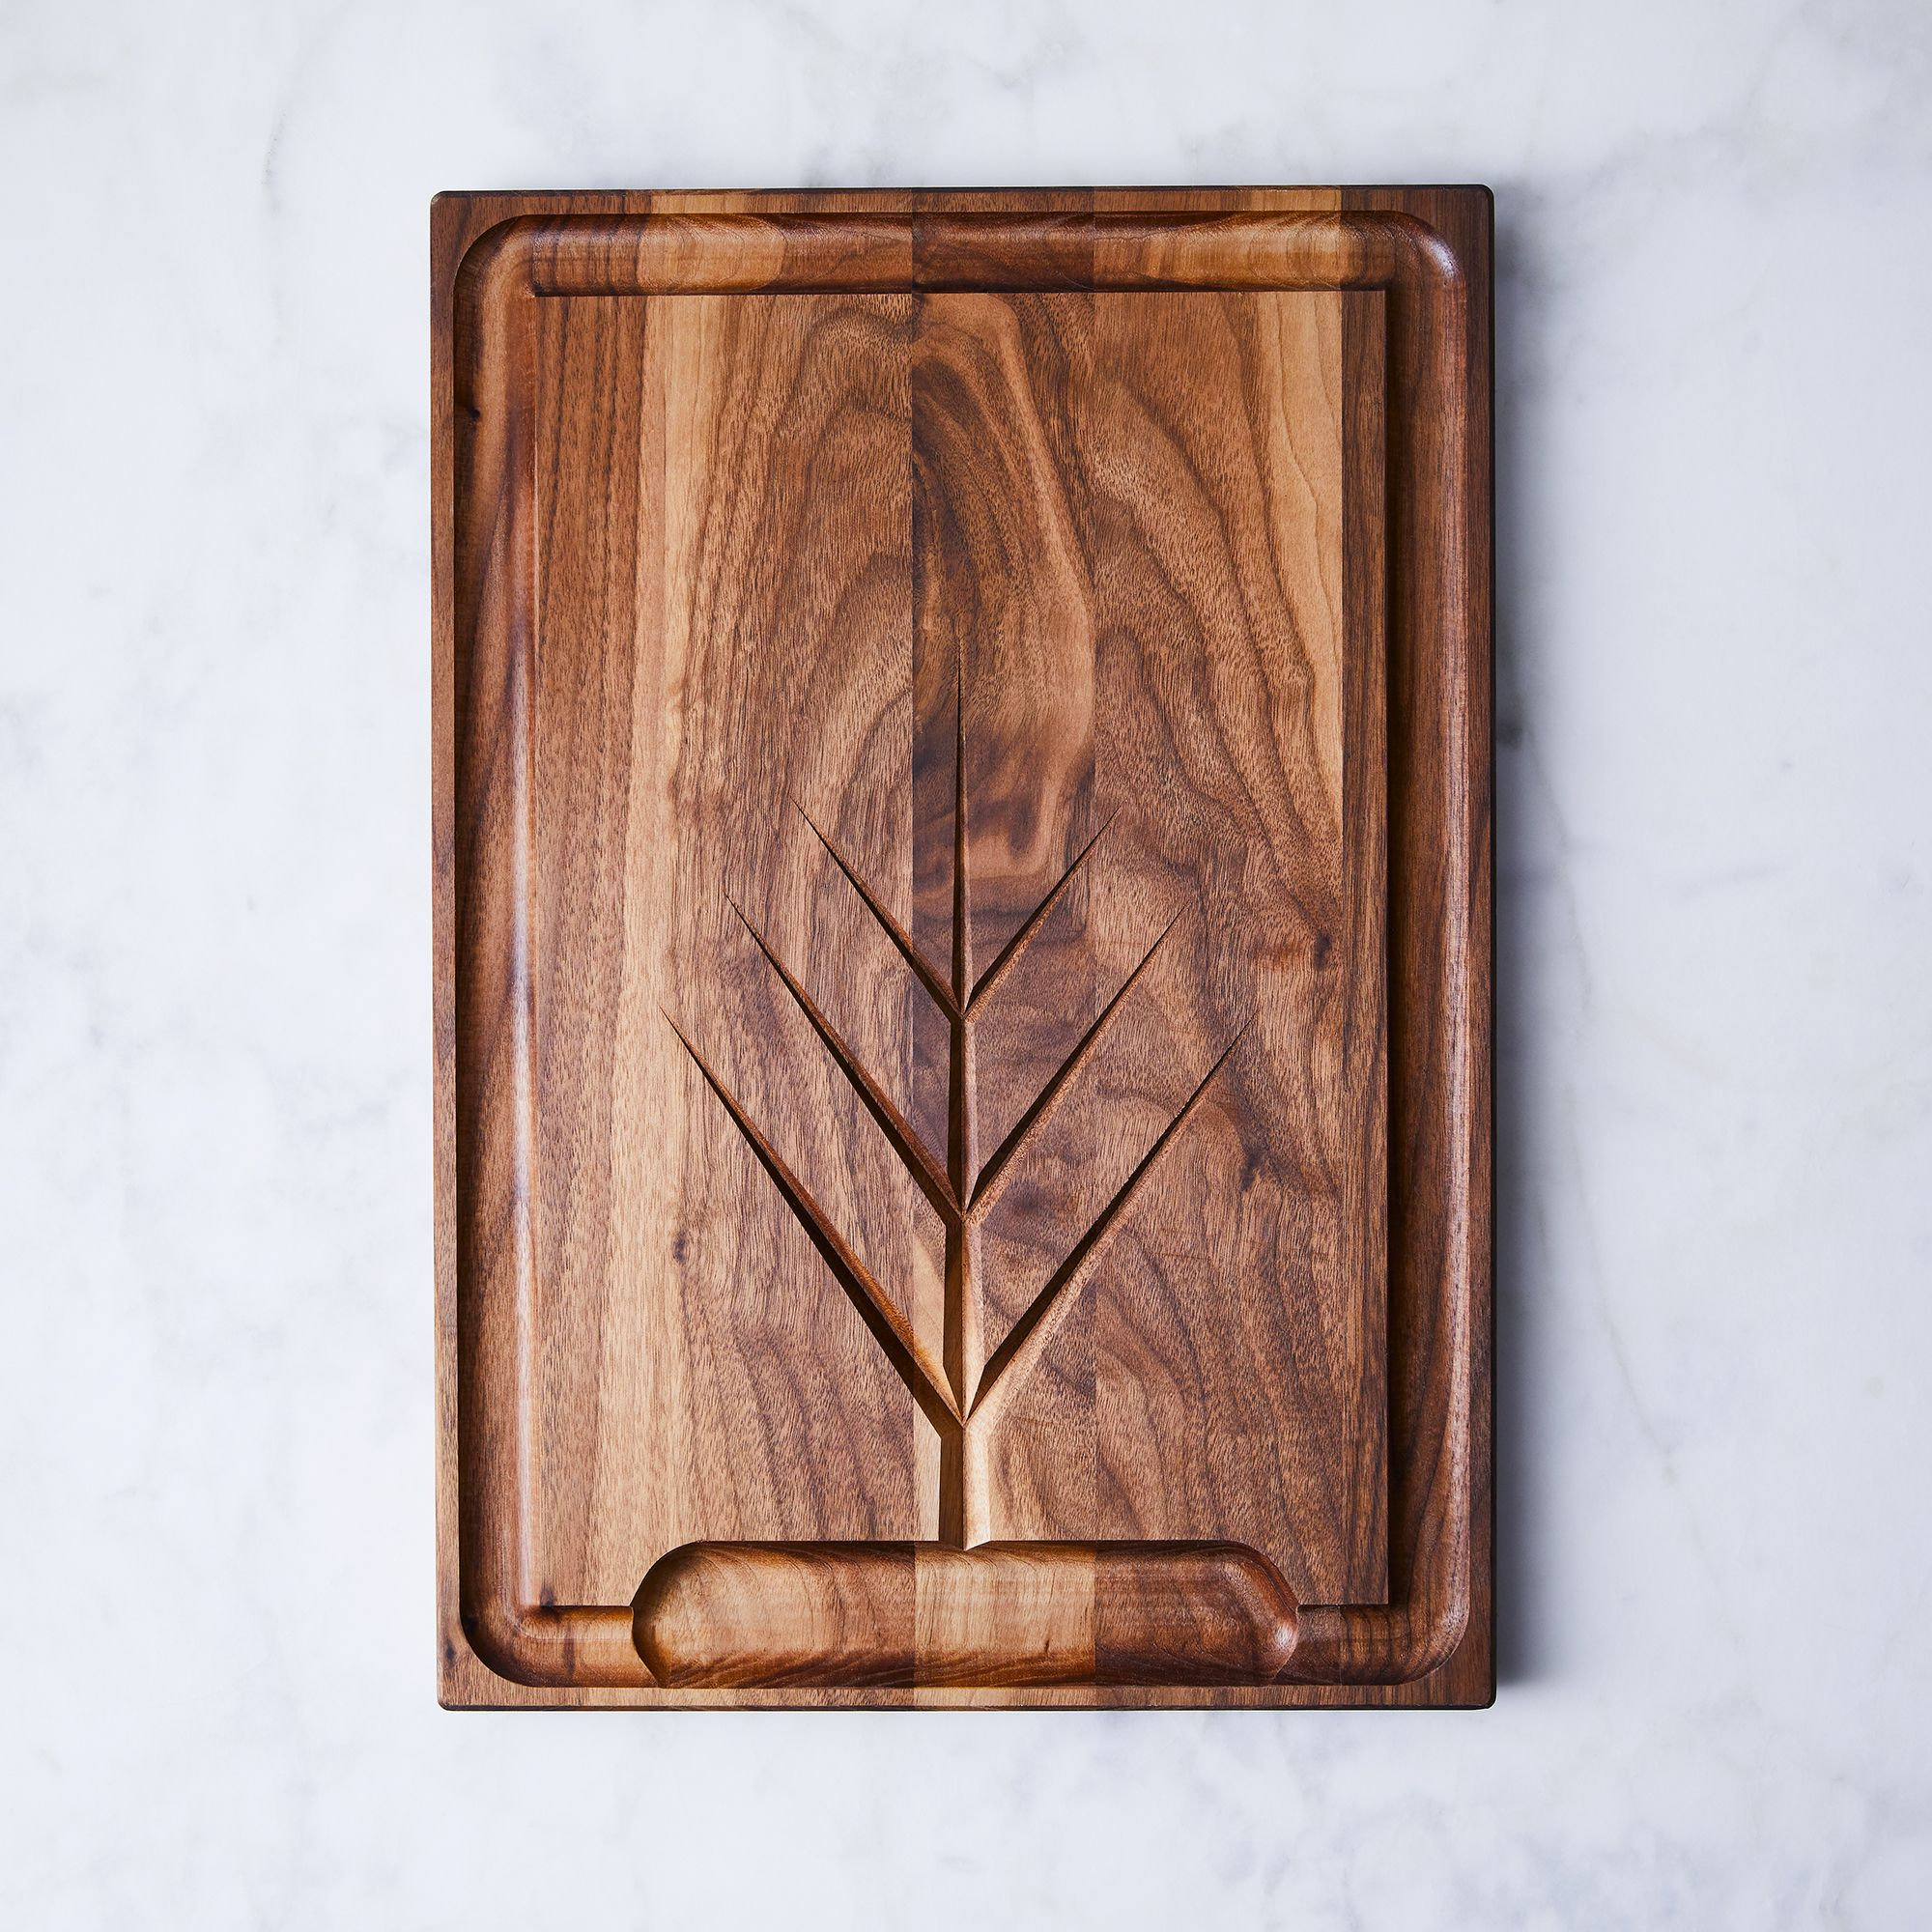 C2ca0ccd 0cc4 4d2f 8a8e 7bb512921eb8  2018 0201 jk adams walnut carving board with moat large silo ty mecham 004